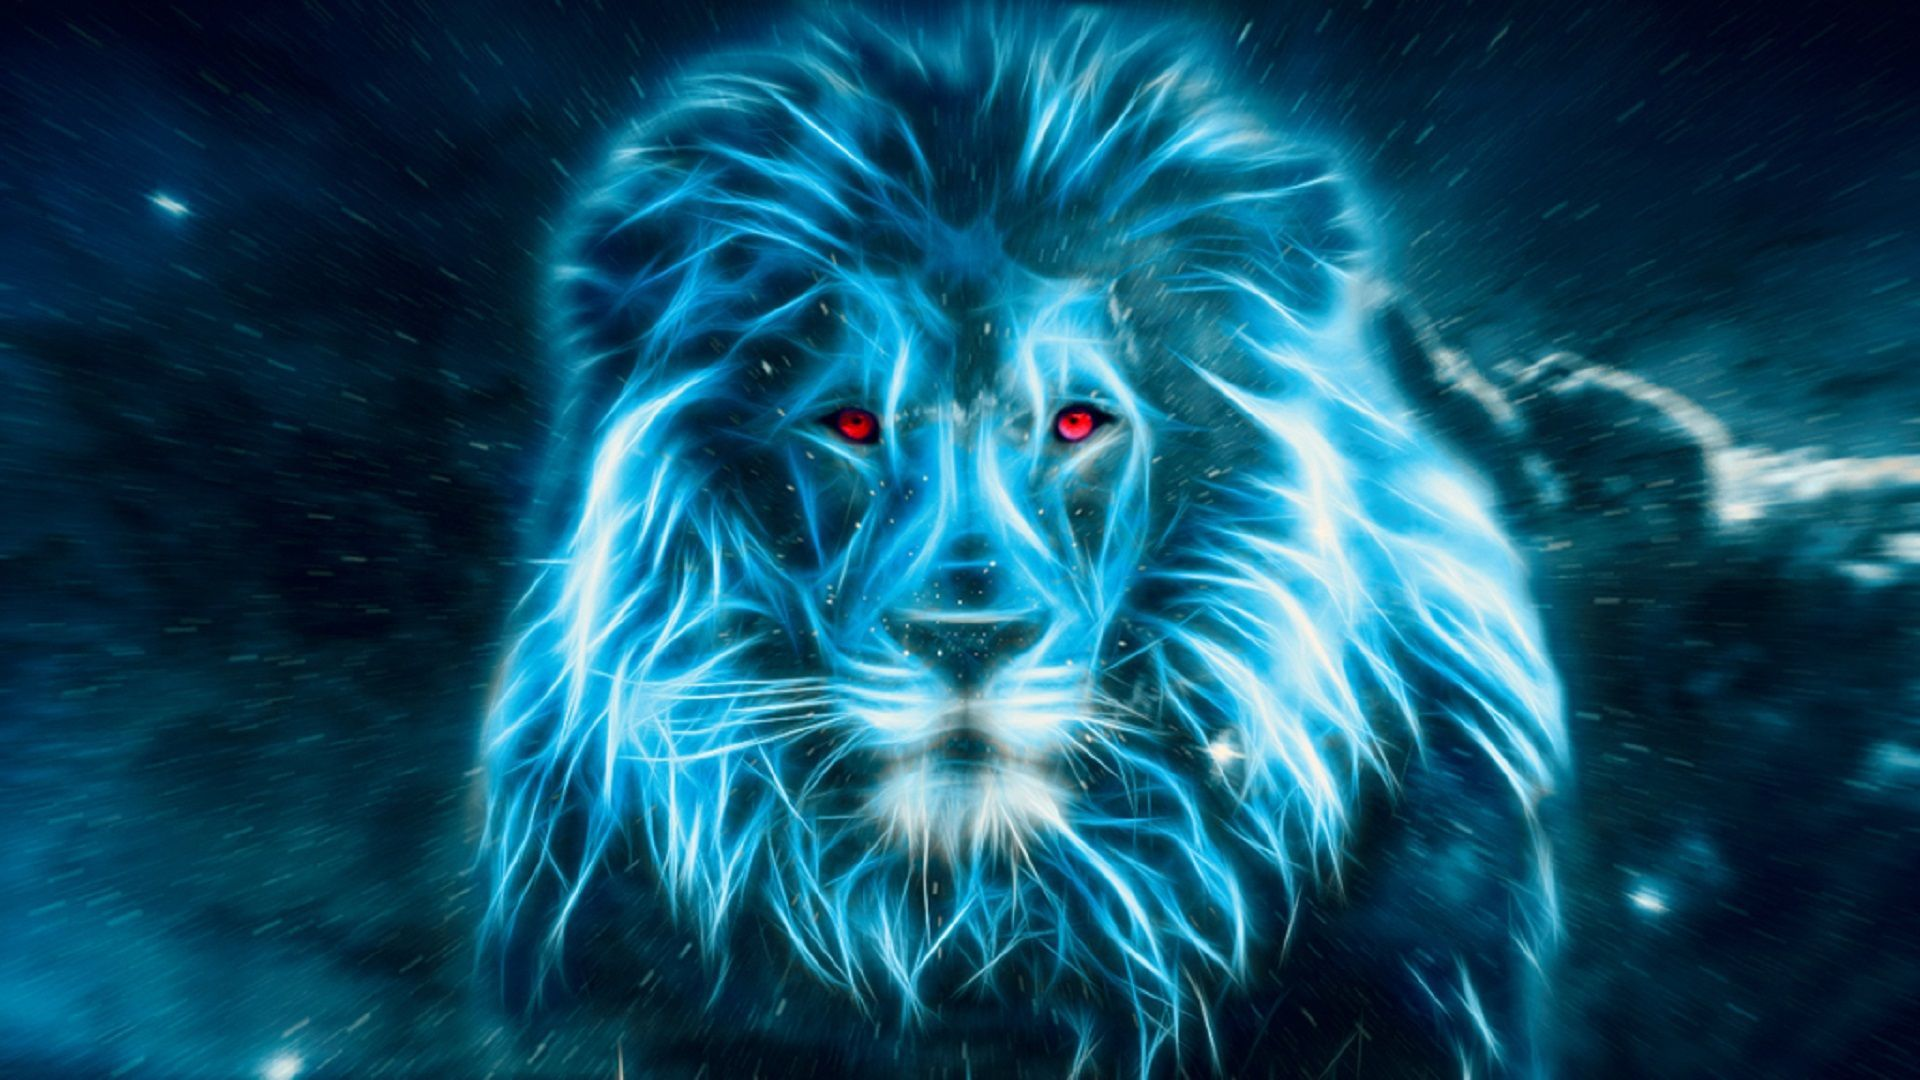 1920x1080 Lion in blue Wallpapers[19201080] #Music #IndieArtist ...